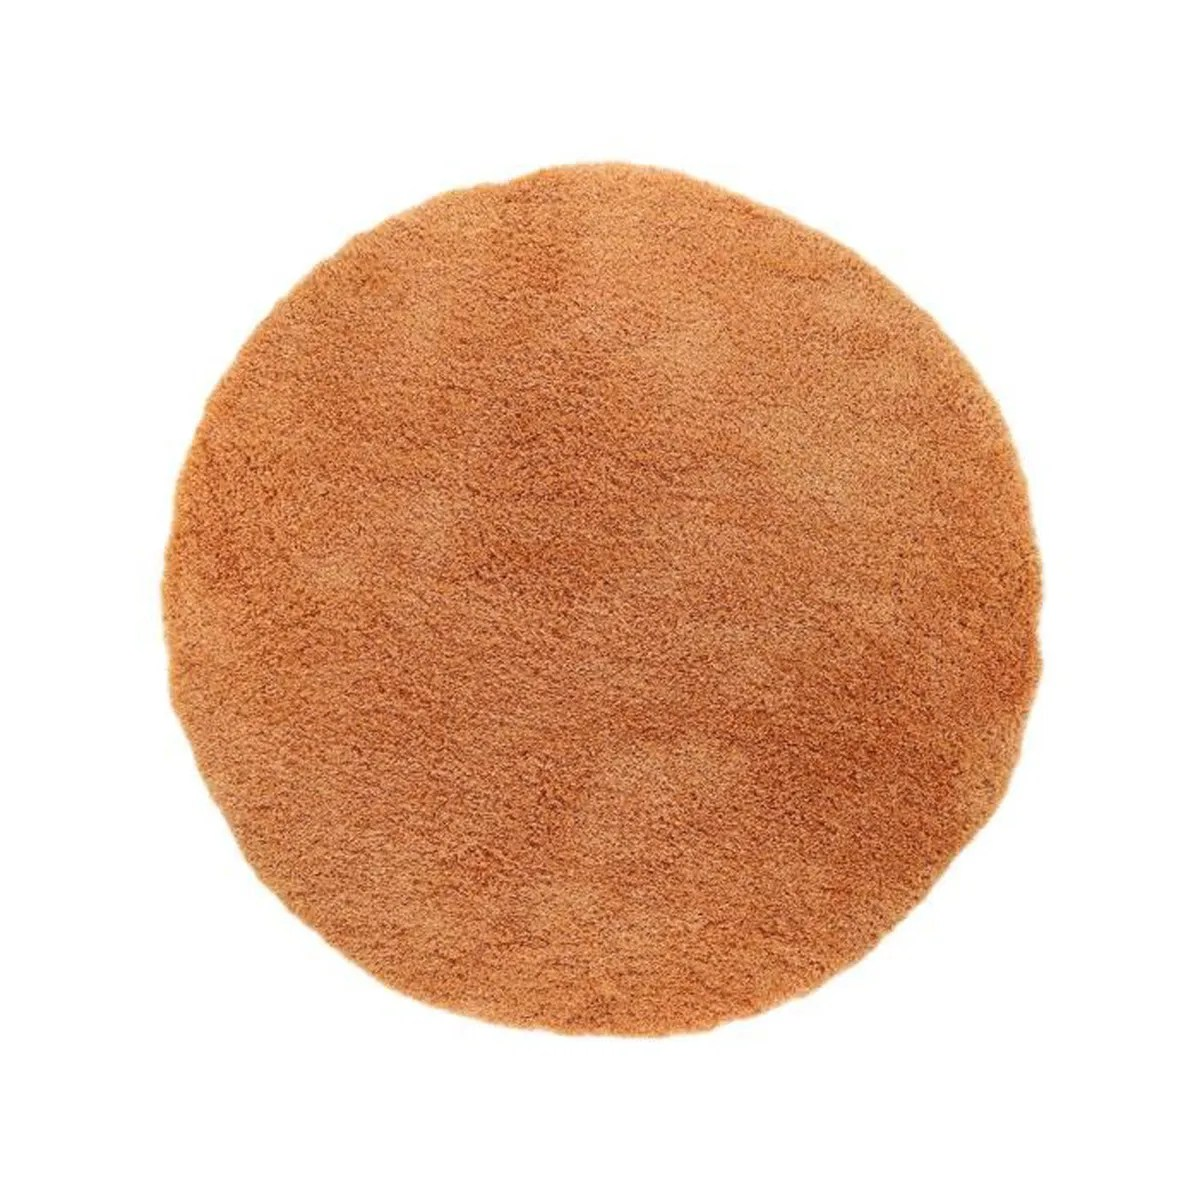 Tapis Shaggy Orange Tapis Shaggy à Poils Longs Sophie Orange ø 200 Cm Rond Tapis